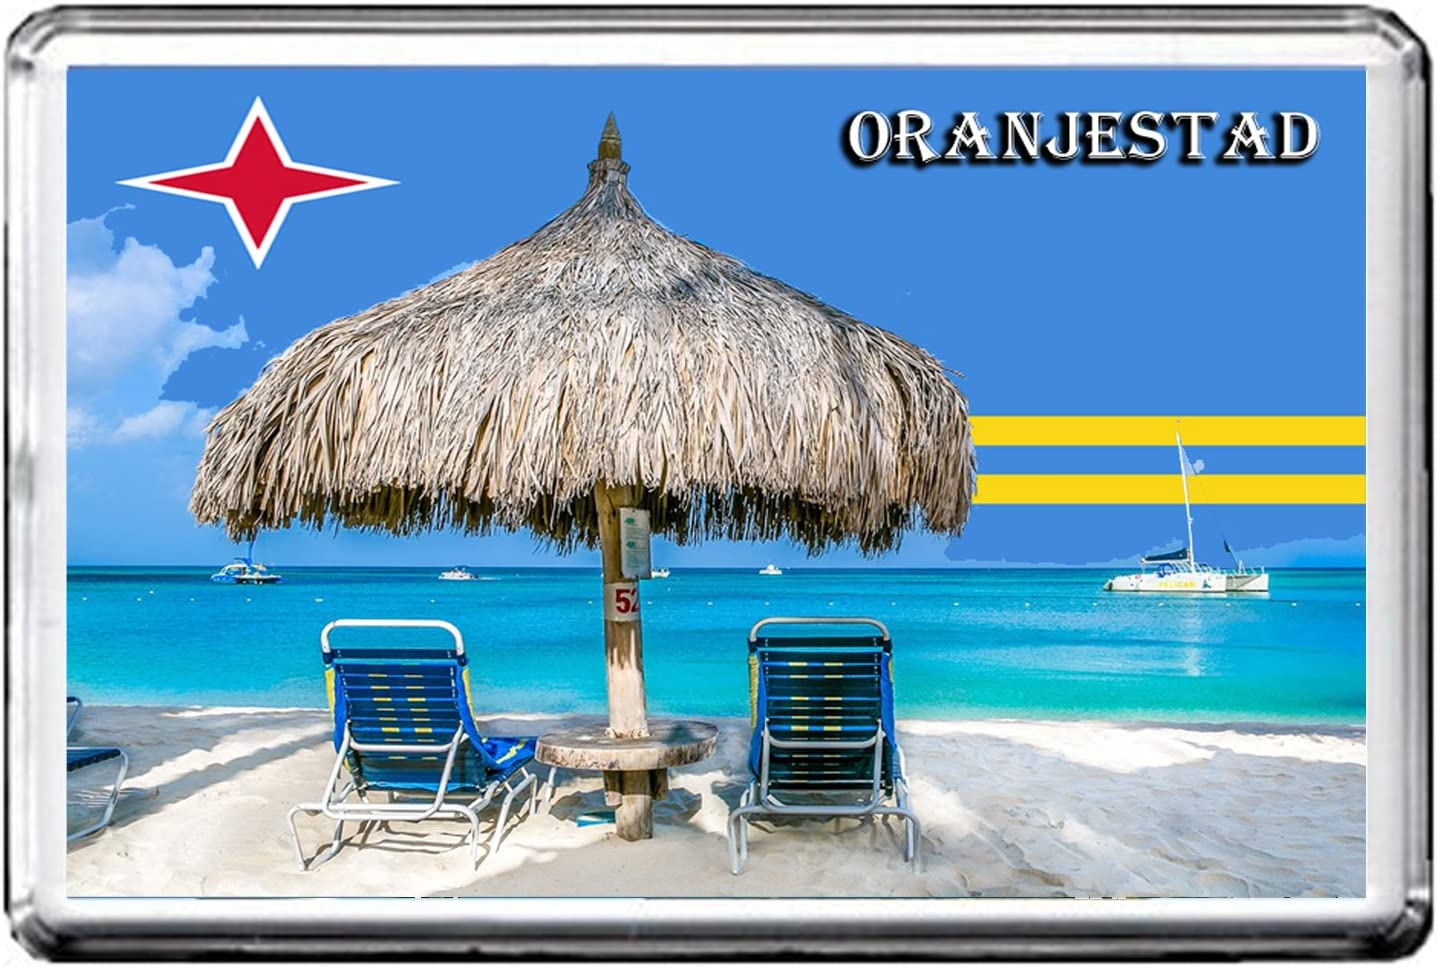 ORANJESTAD FRIDGE MAGNET 003 THE CITY OF ARUBA REFRIGERATOR MAGNET